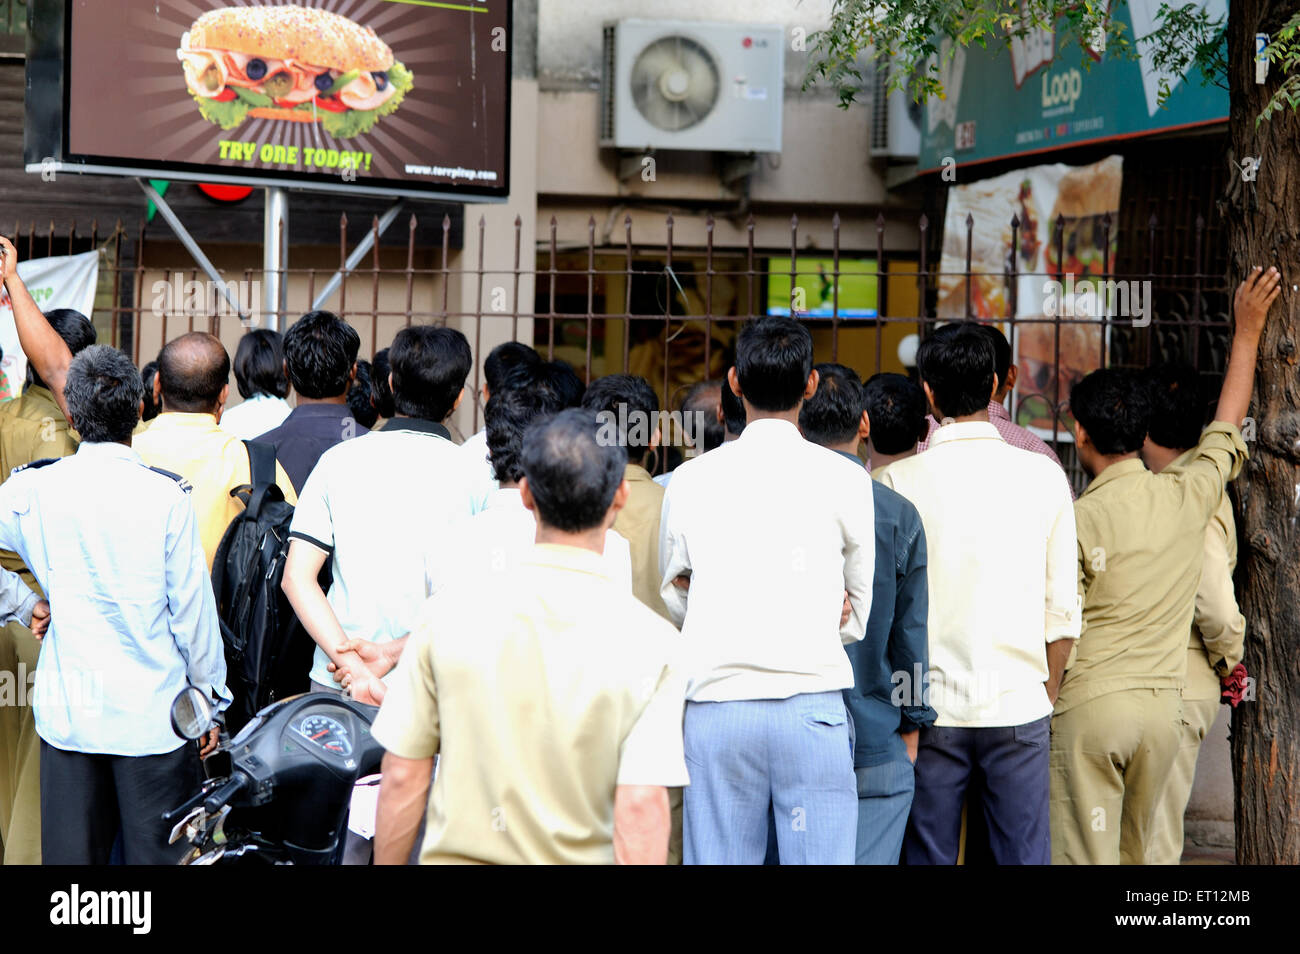 People watching cricket match ; India - Stock Image